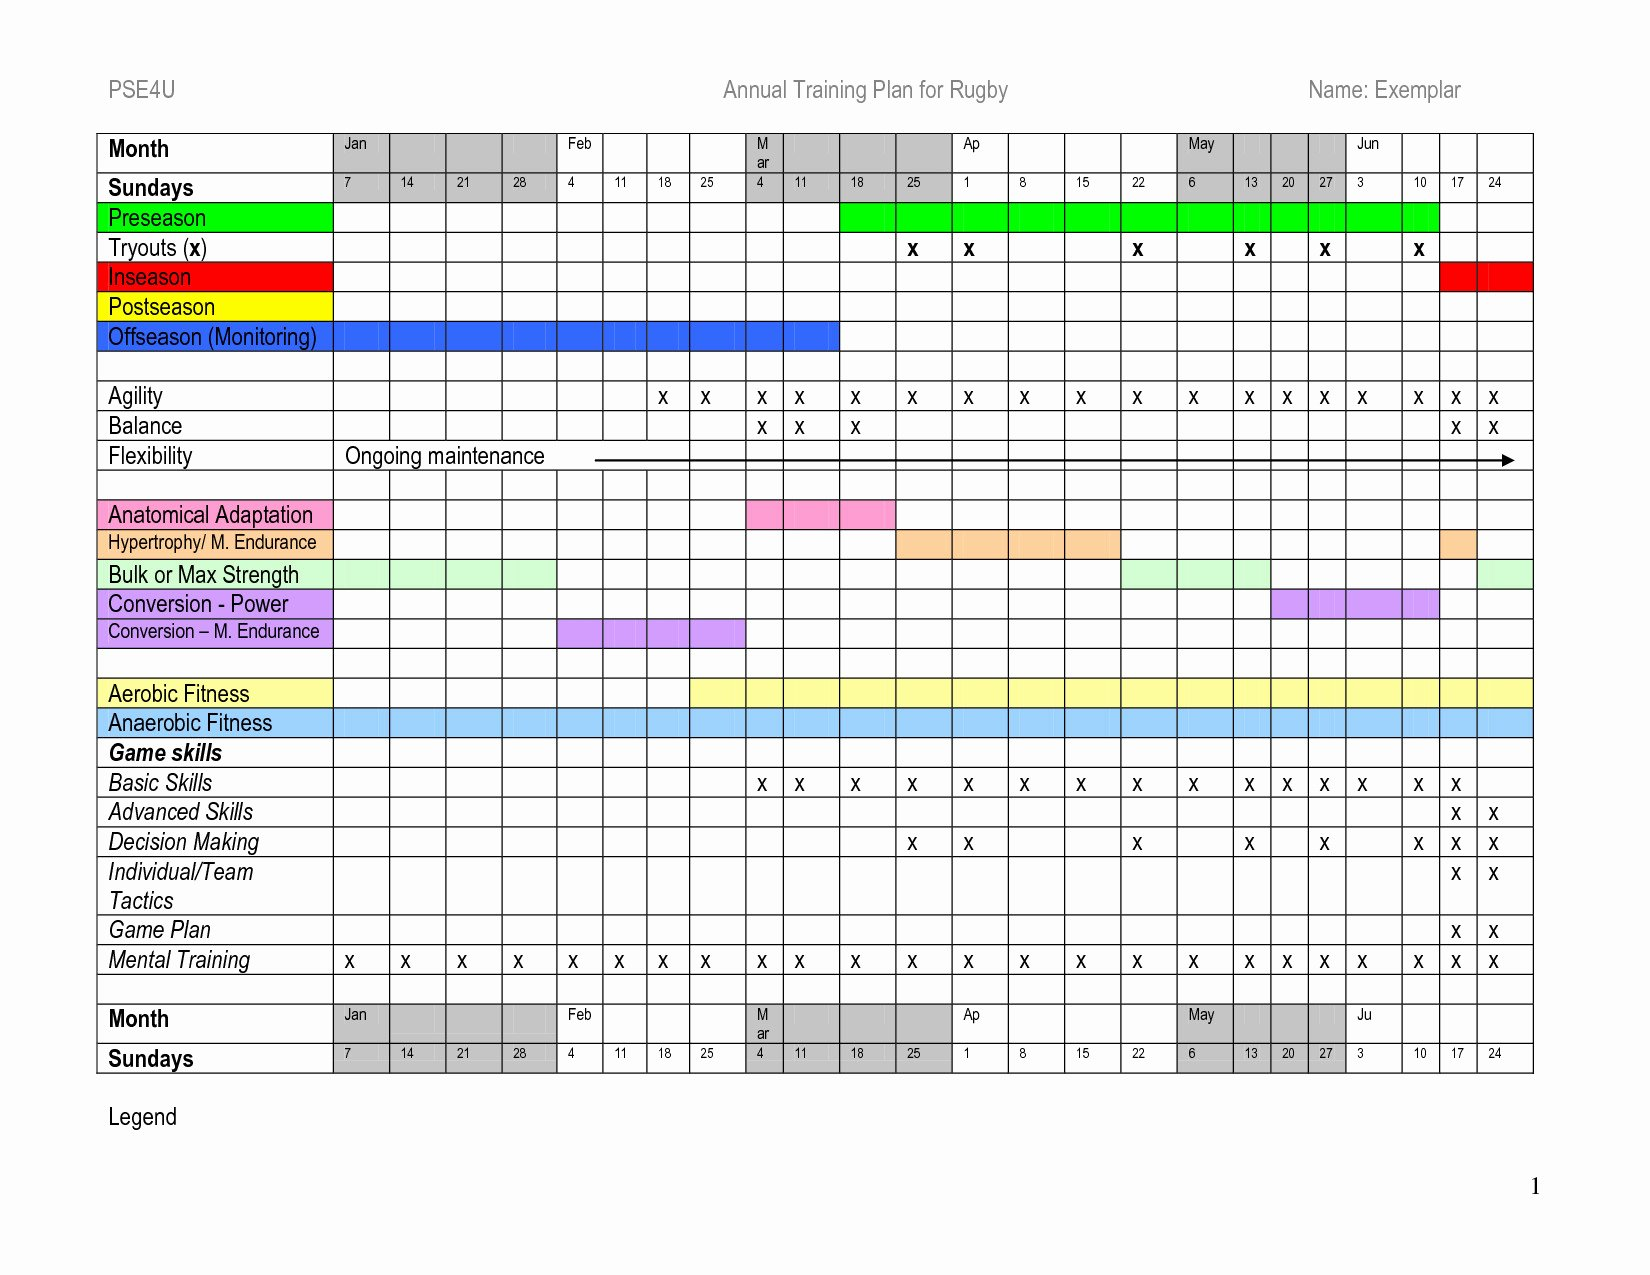 Training Plan Template Excel Awesome Annual Training Plan Template Excel – Printable Schedule